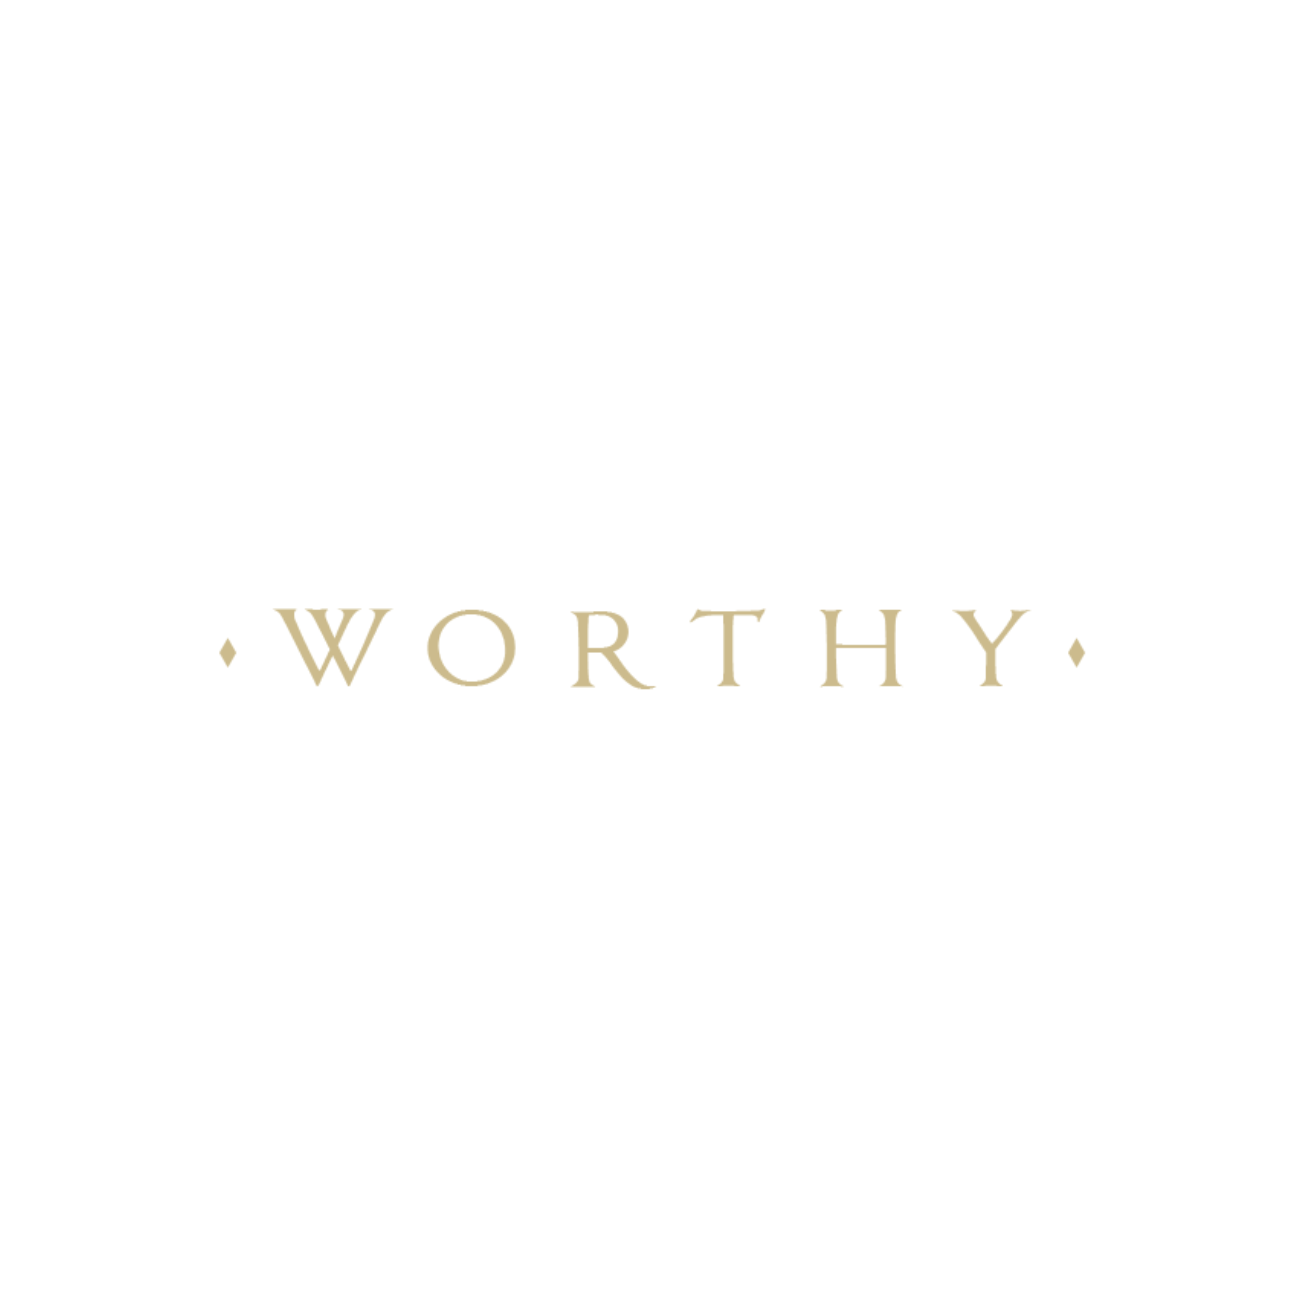 worthy .png